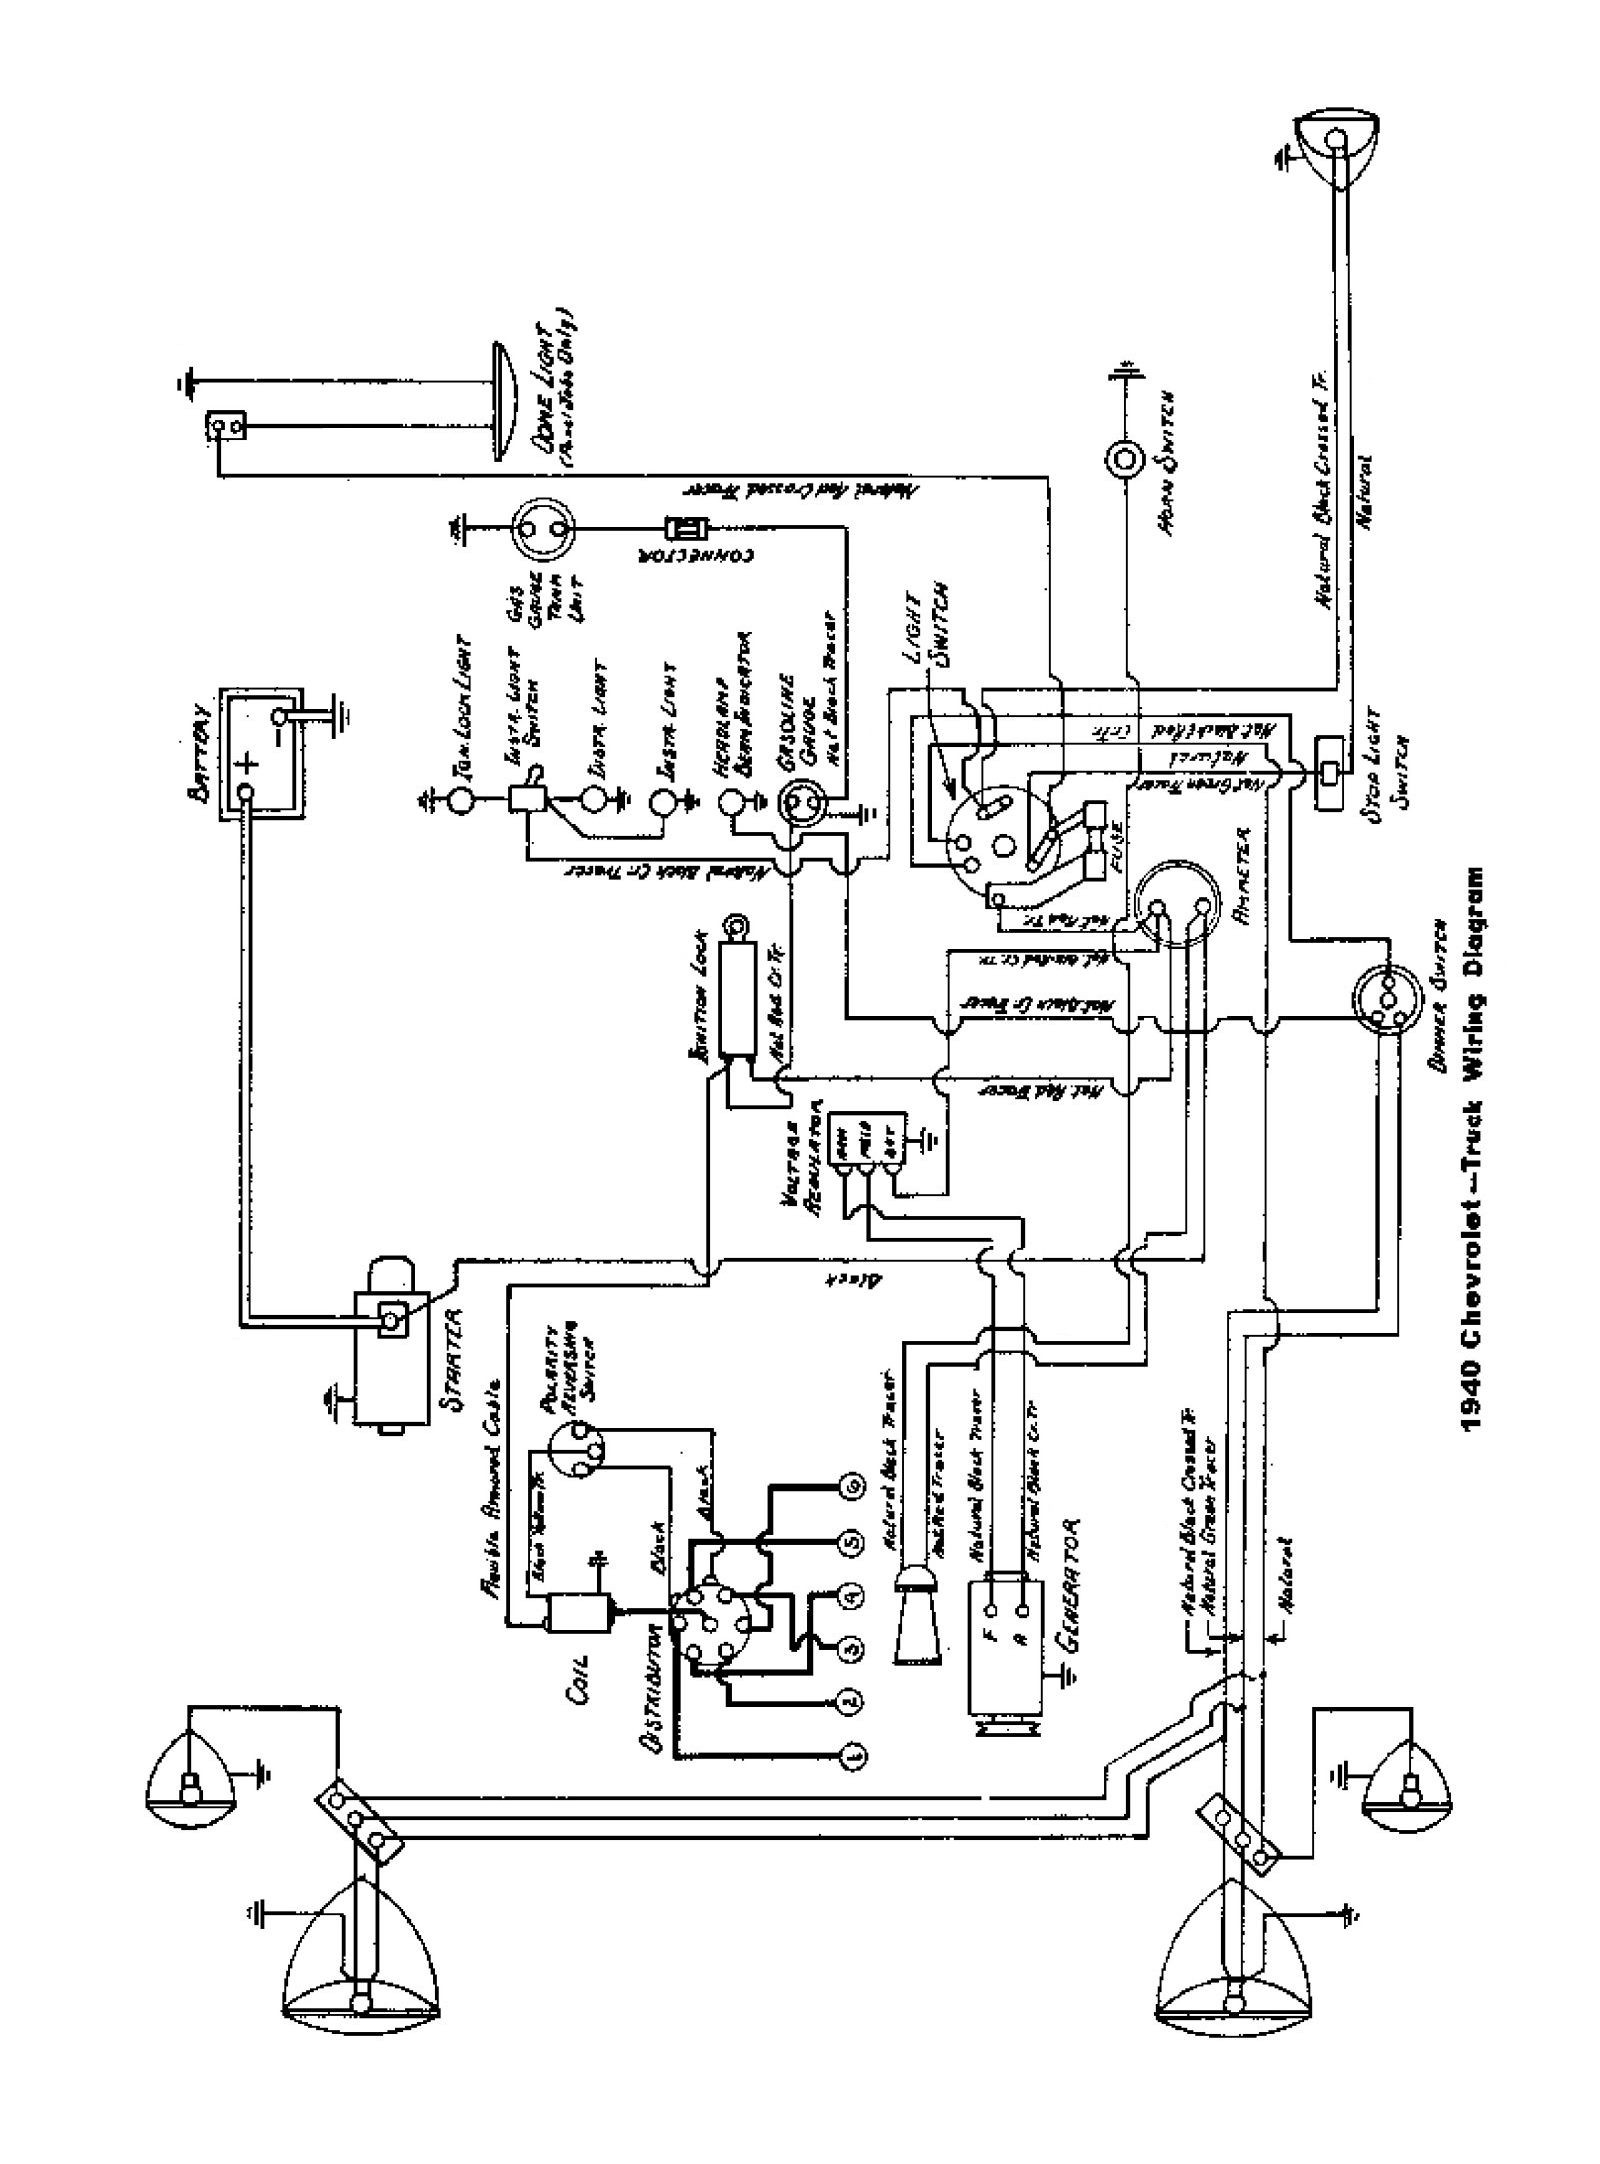 1950 Willys Wagon Wiring Diagram Schematic Libraries Station Free Picture 1953 Pick Up Database Librarywillys Library Mitsubishi